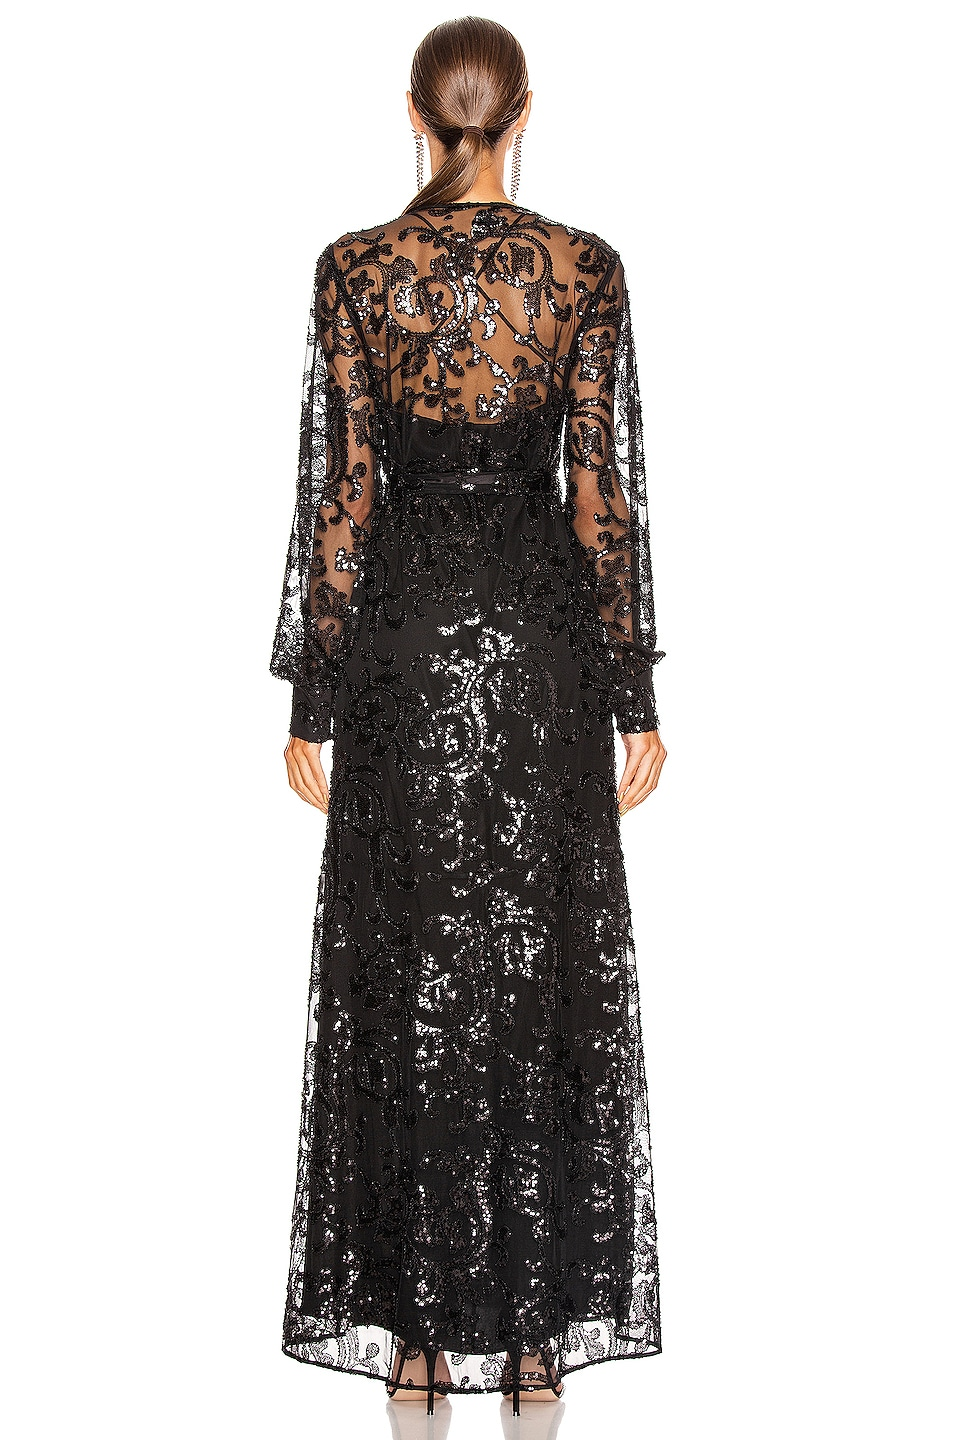 Image 3 of Alexis Biata Dress in Beaded Black